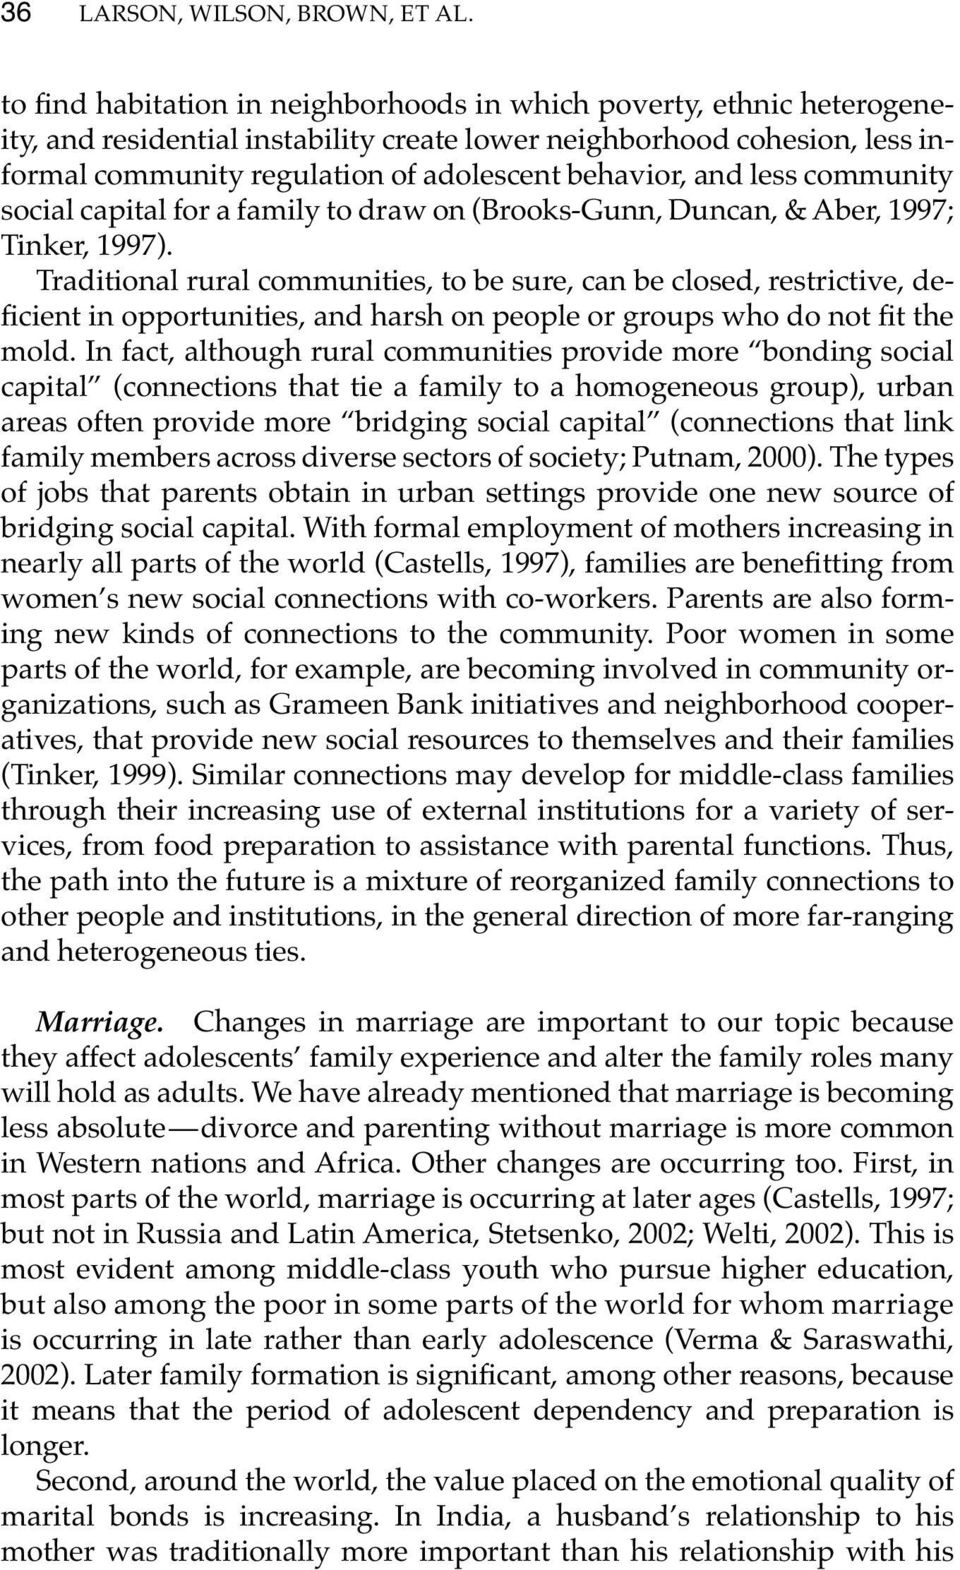 and less community social capital for a family to draw on (Brooks-Gunn, Duncan, & Aber, 1997; Tinker, 1997).